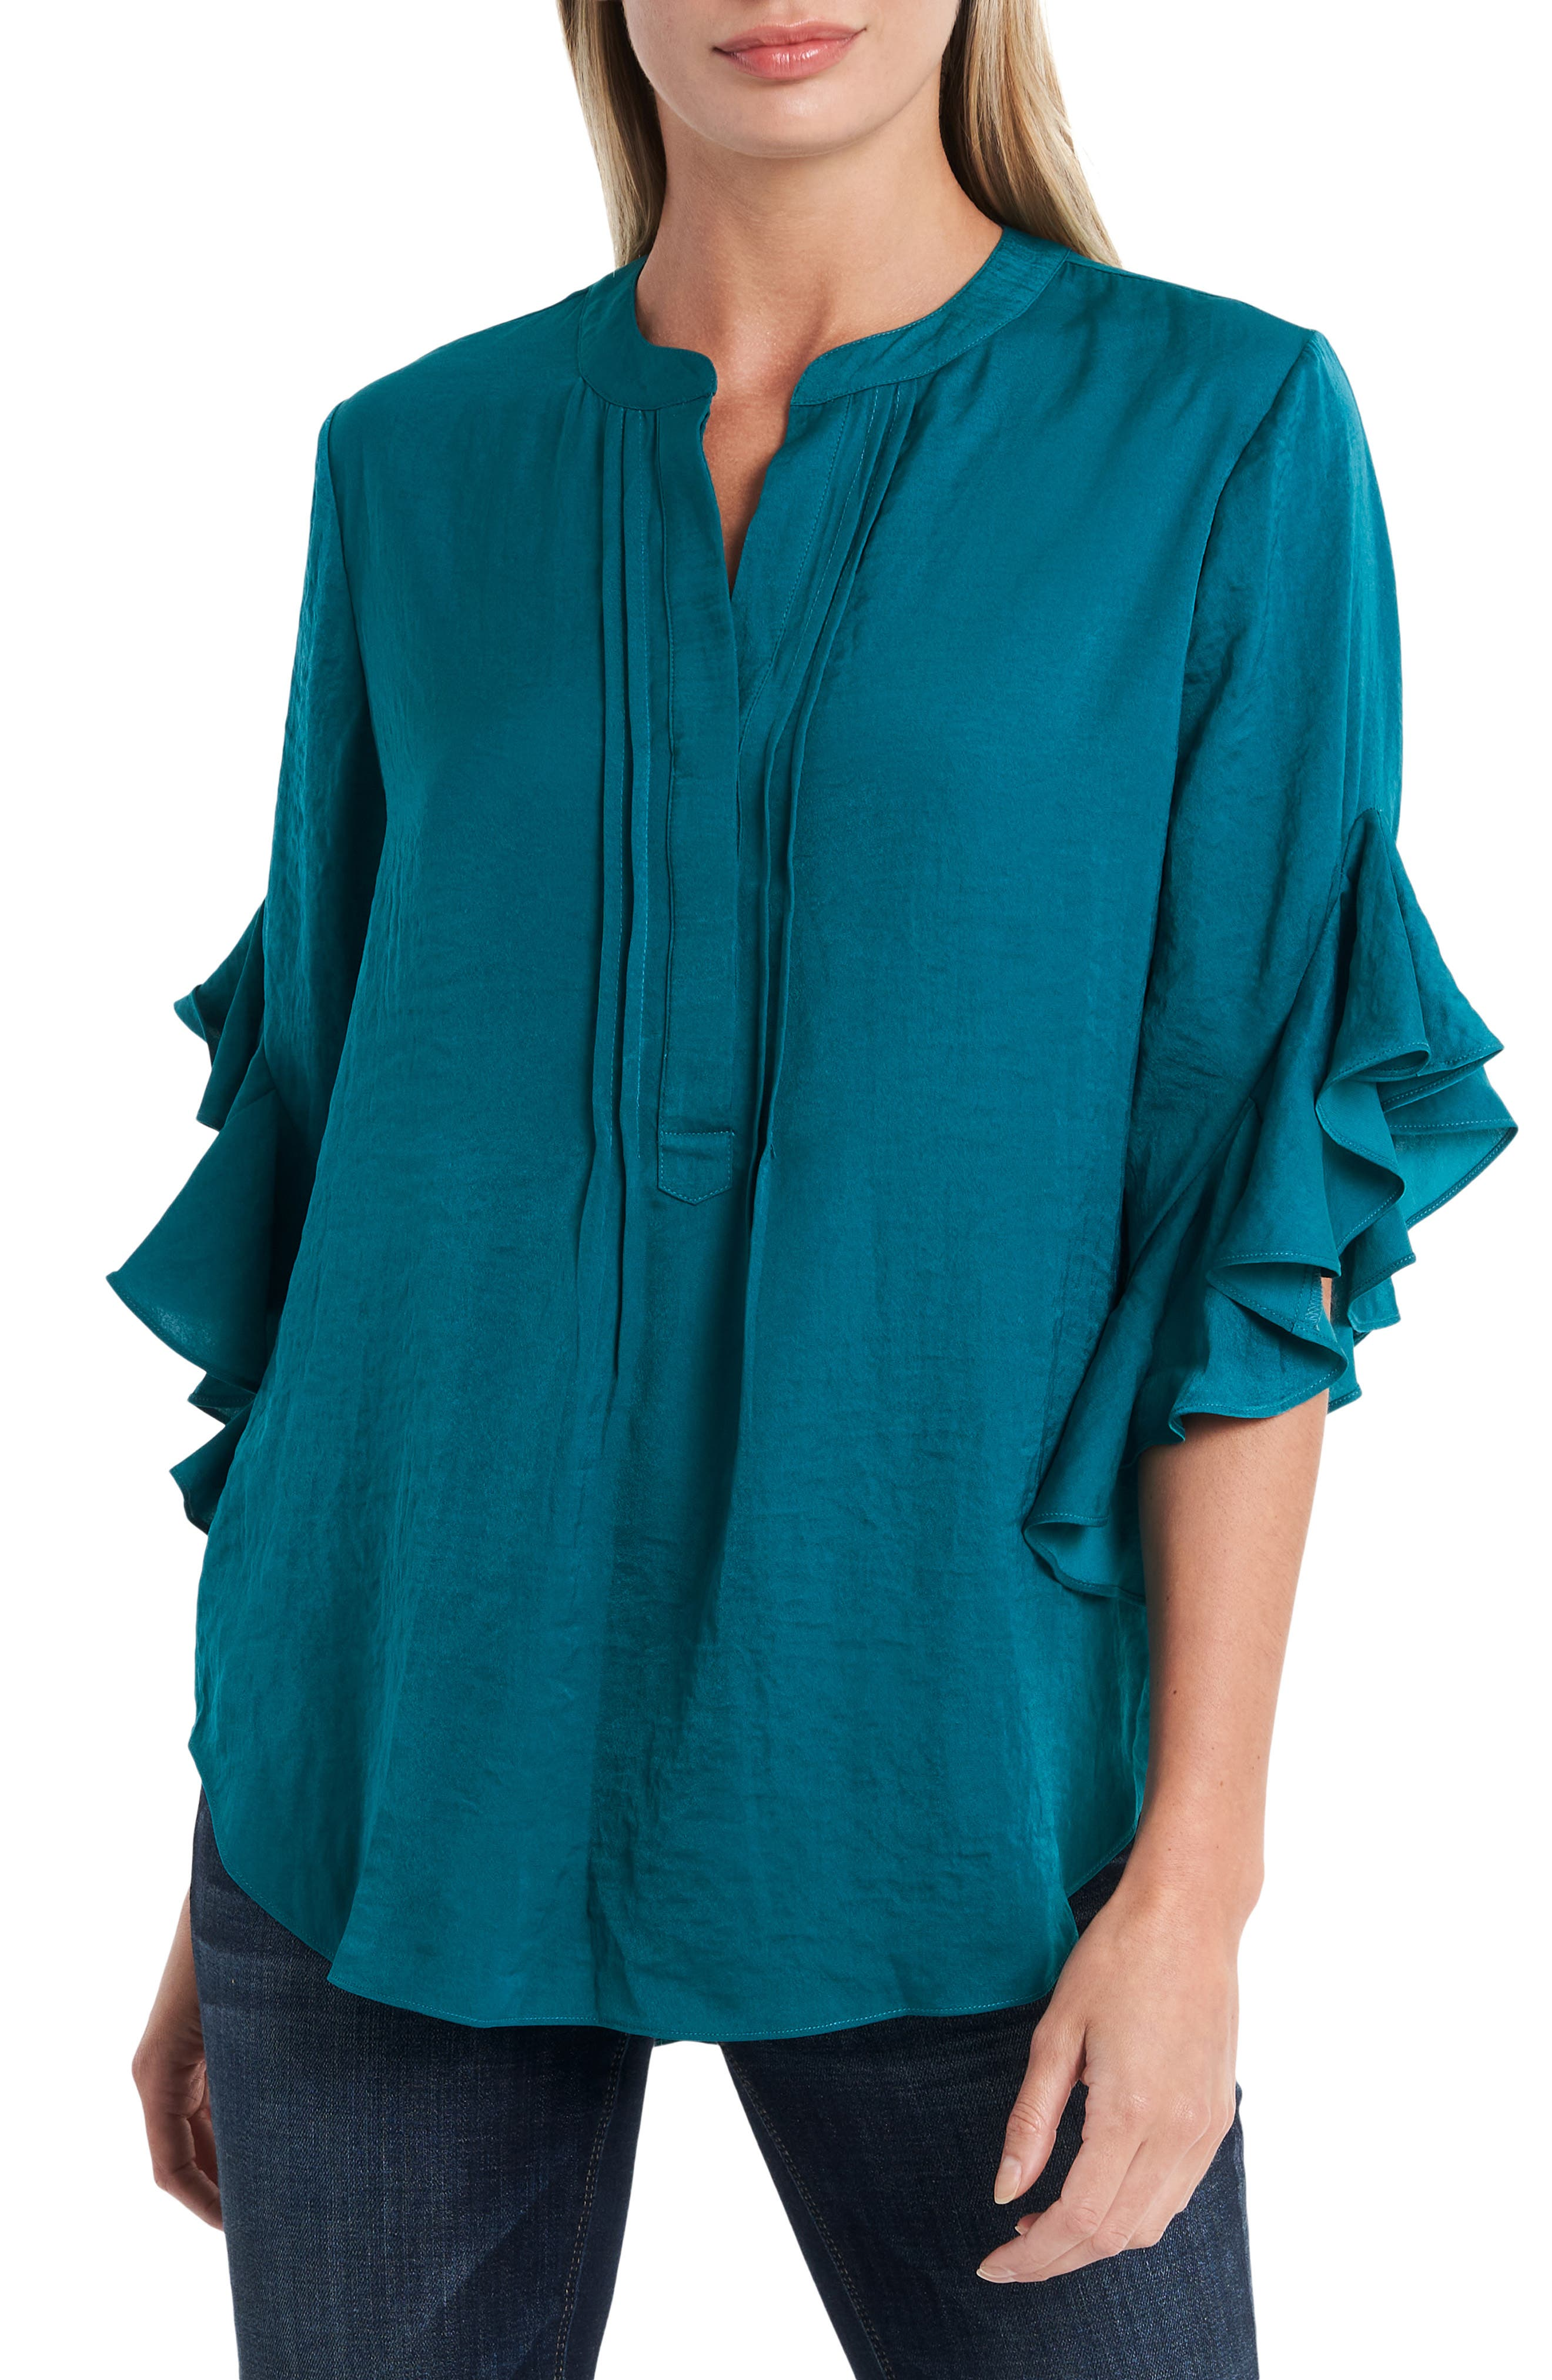 Vince Camuto Rumple Ruffle Blouse   Nordstrom